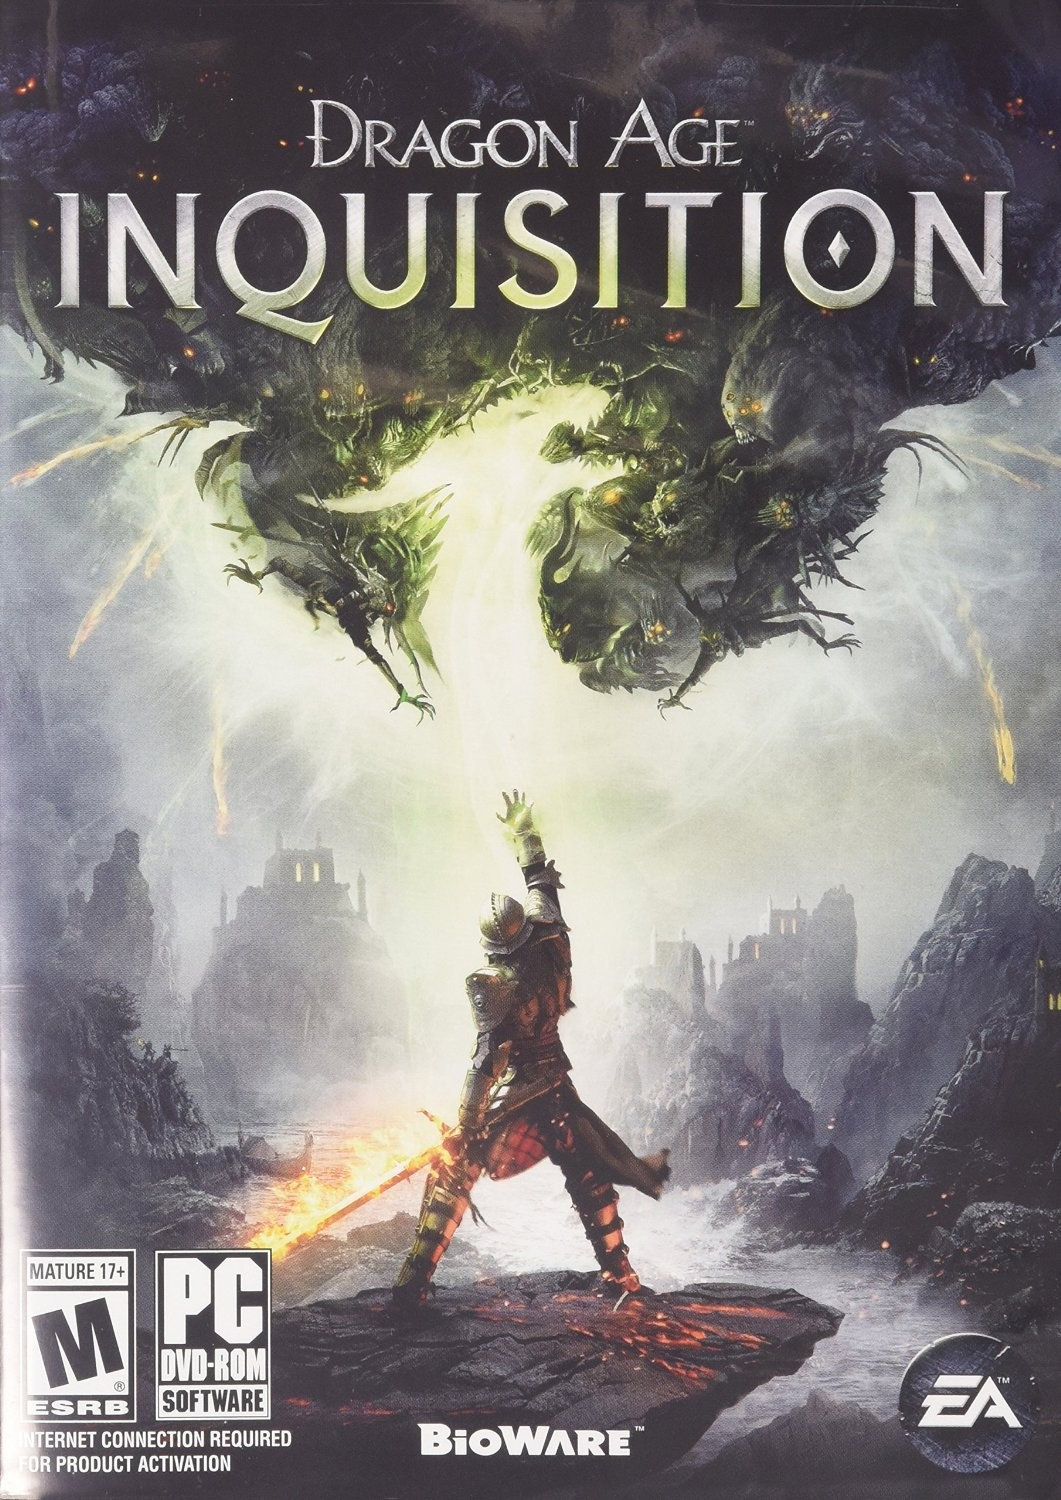 Dragon Age: Inquisition 龙腾世纪: 审判